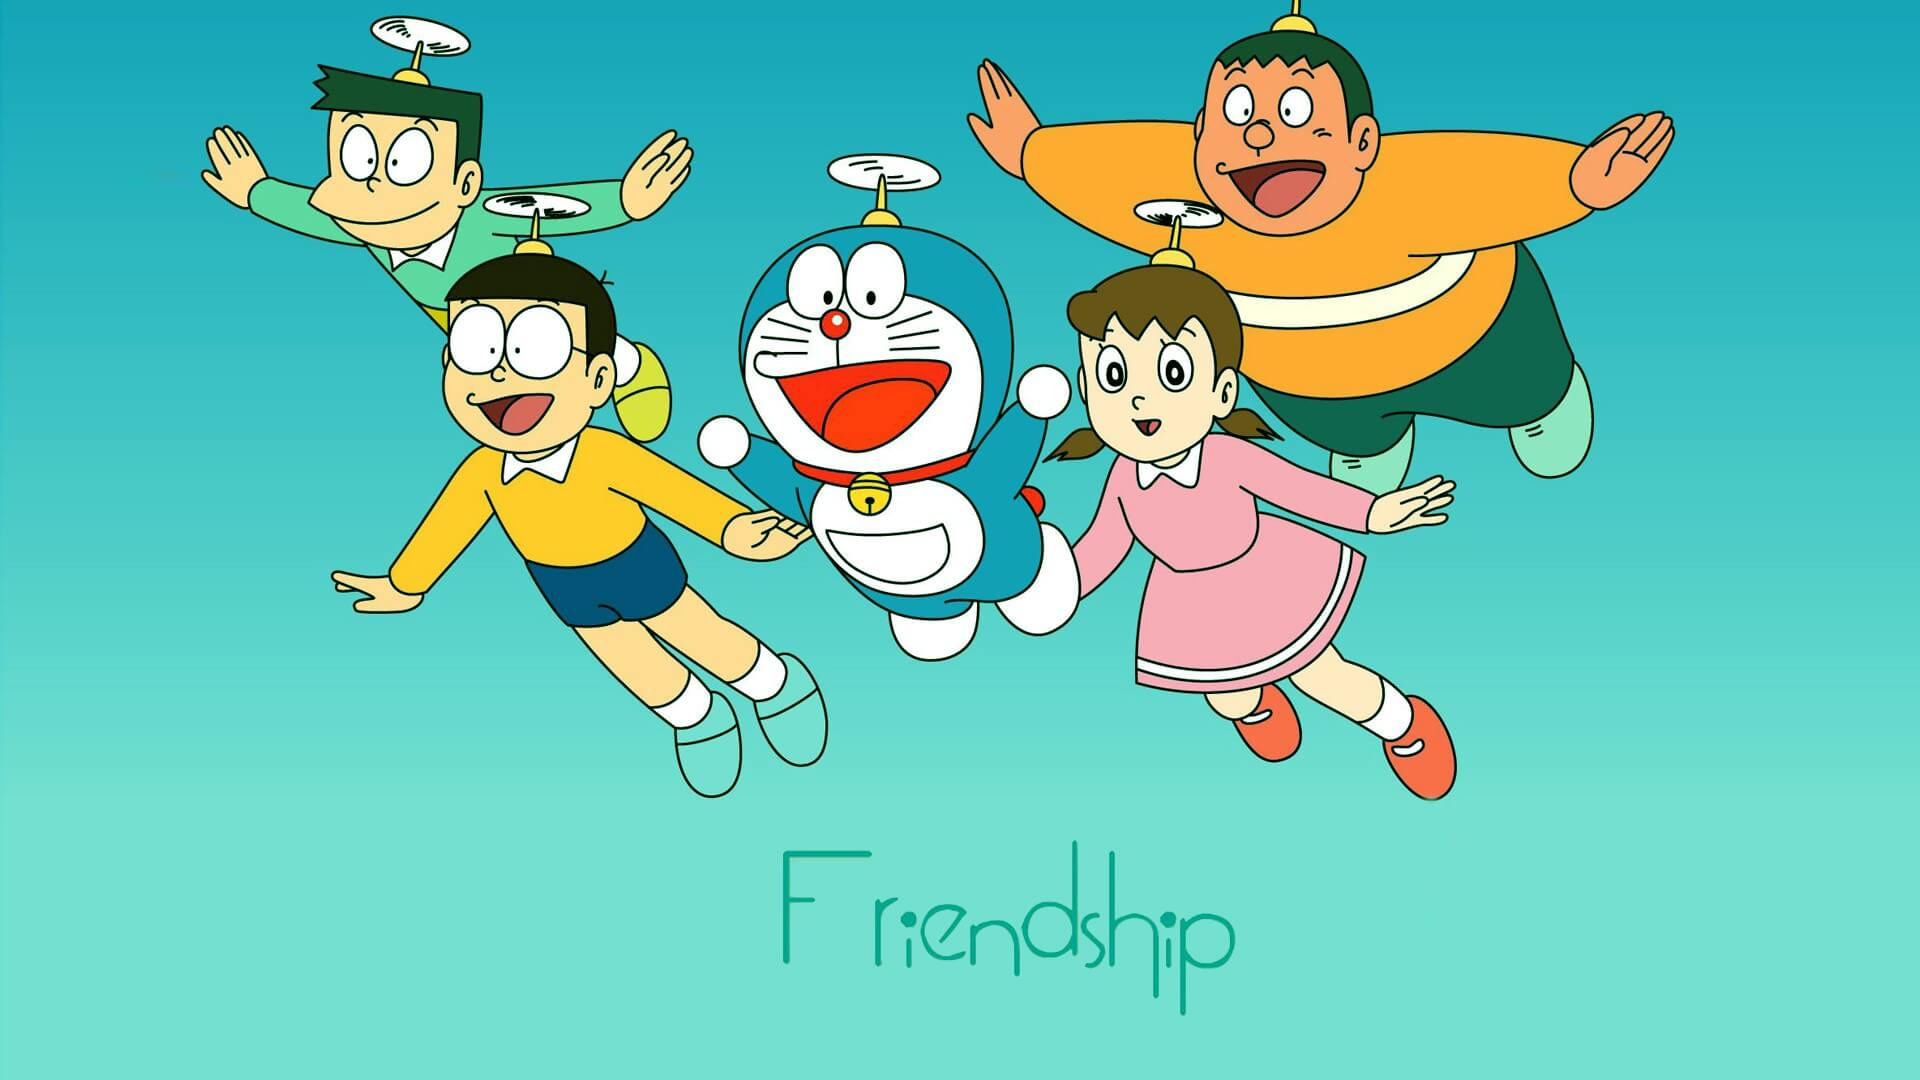 happy friendship day doraemon nobita giyan wallpaper